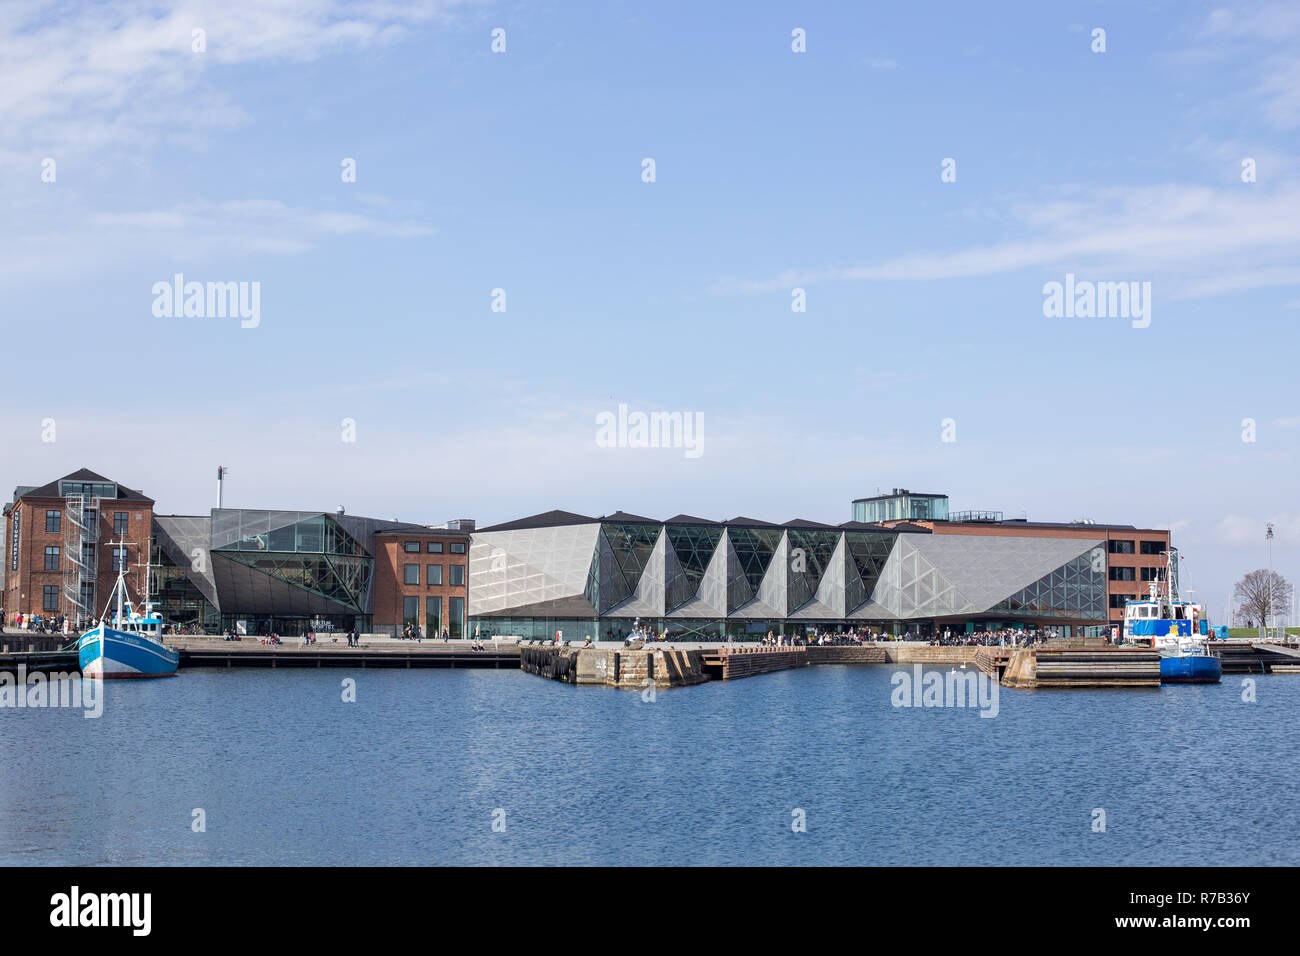 The Culture Yard in Helsingor, Denmark - Stock Image